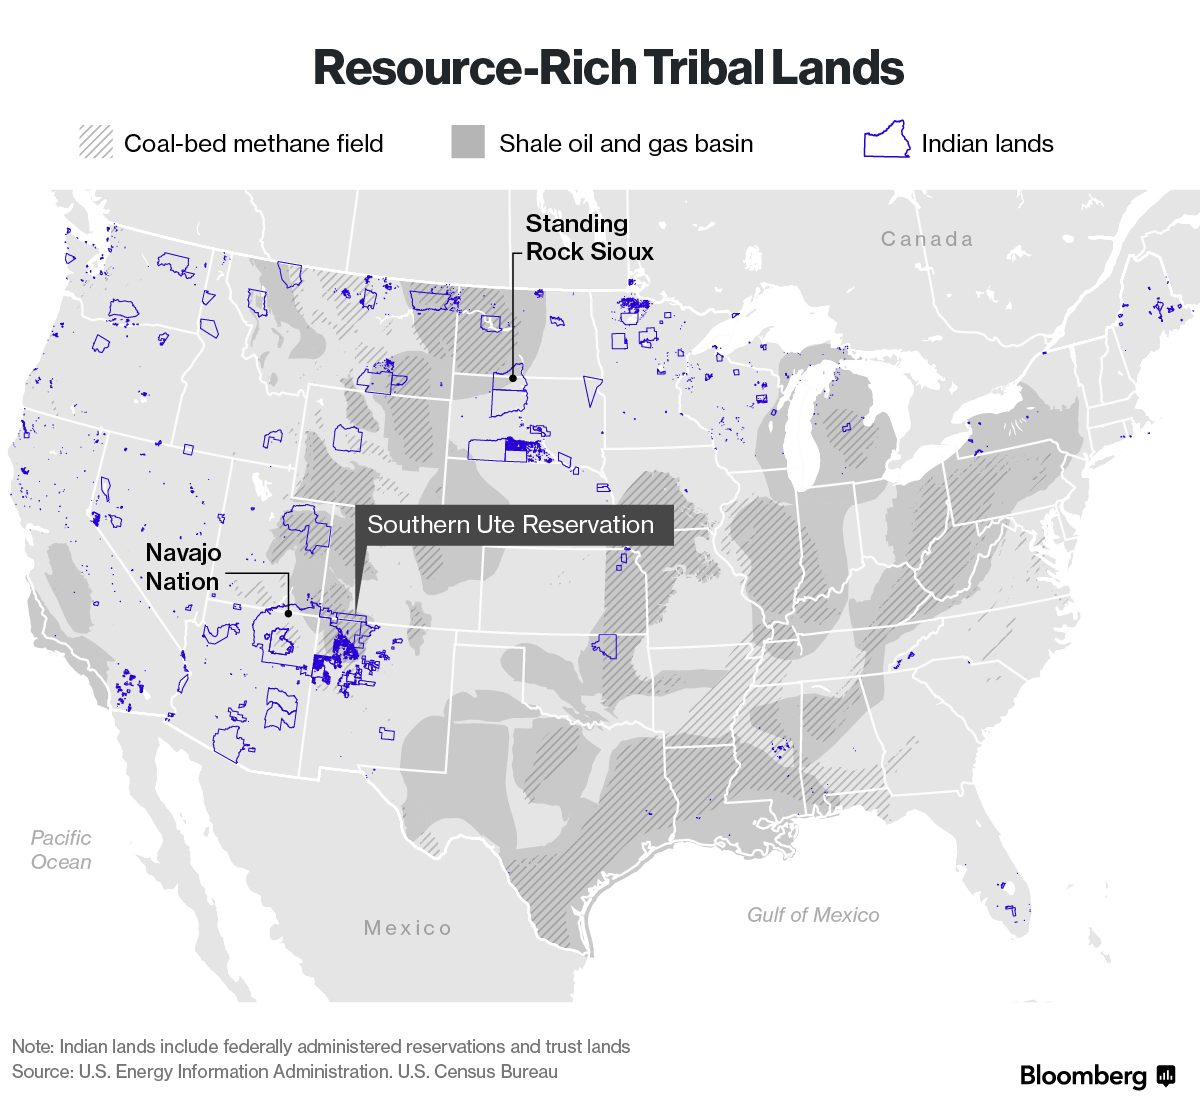 Contextualizing the Dakota Access Pipeline: A roundup of